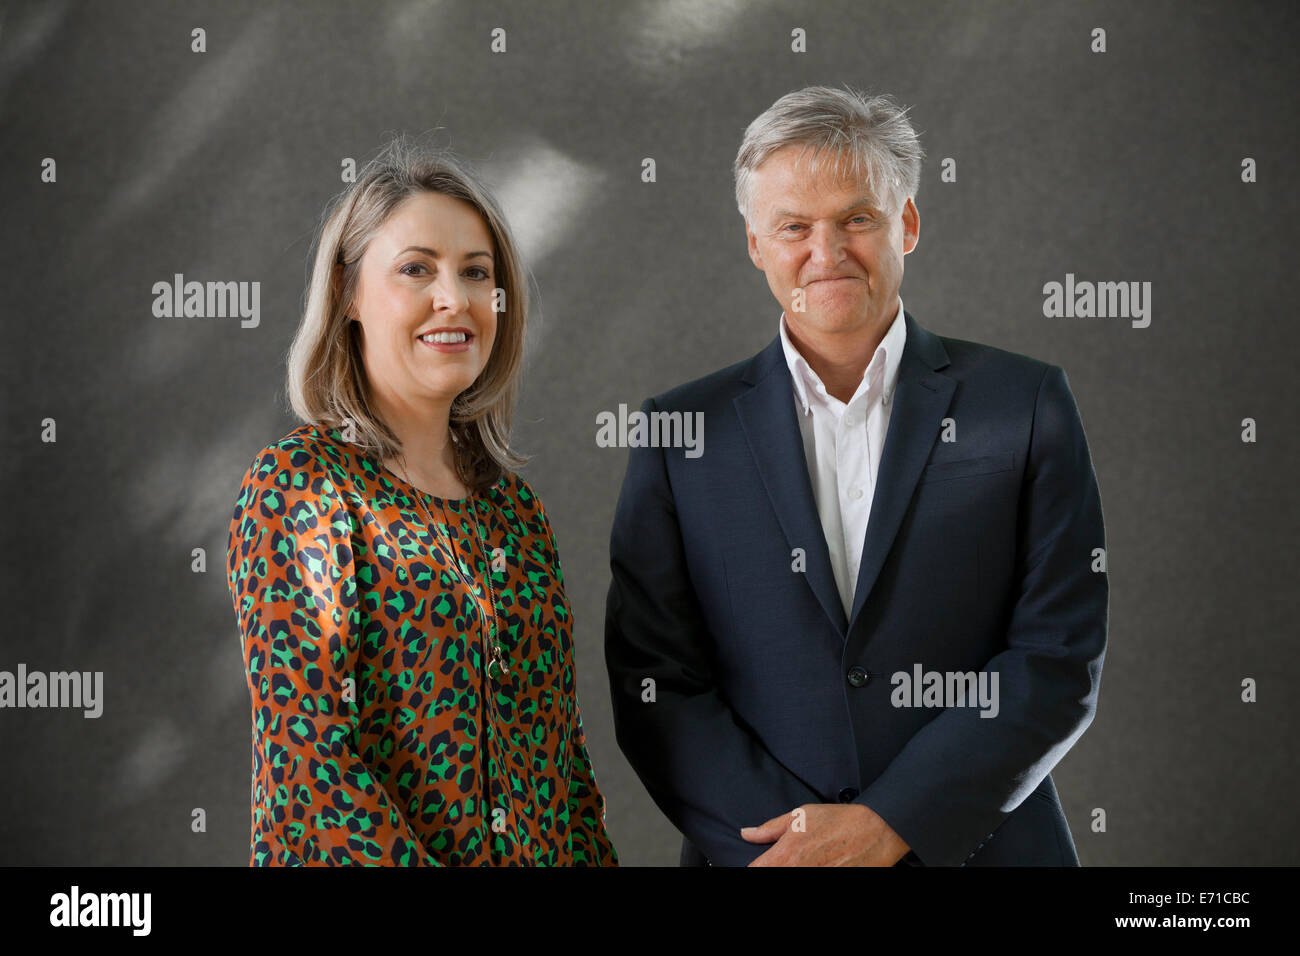 Sarah Smith, broadcaster and journalist, with Iain Macwhirter, political commentator, journalist and author. - Stock Image